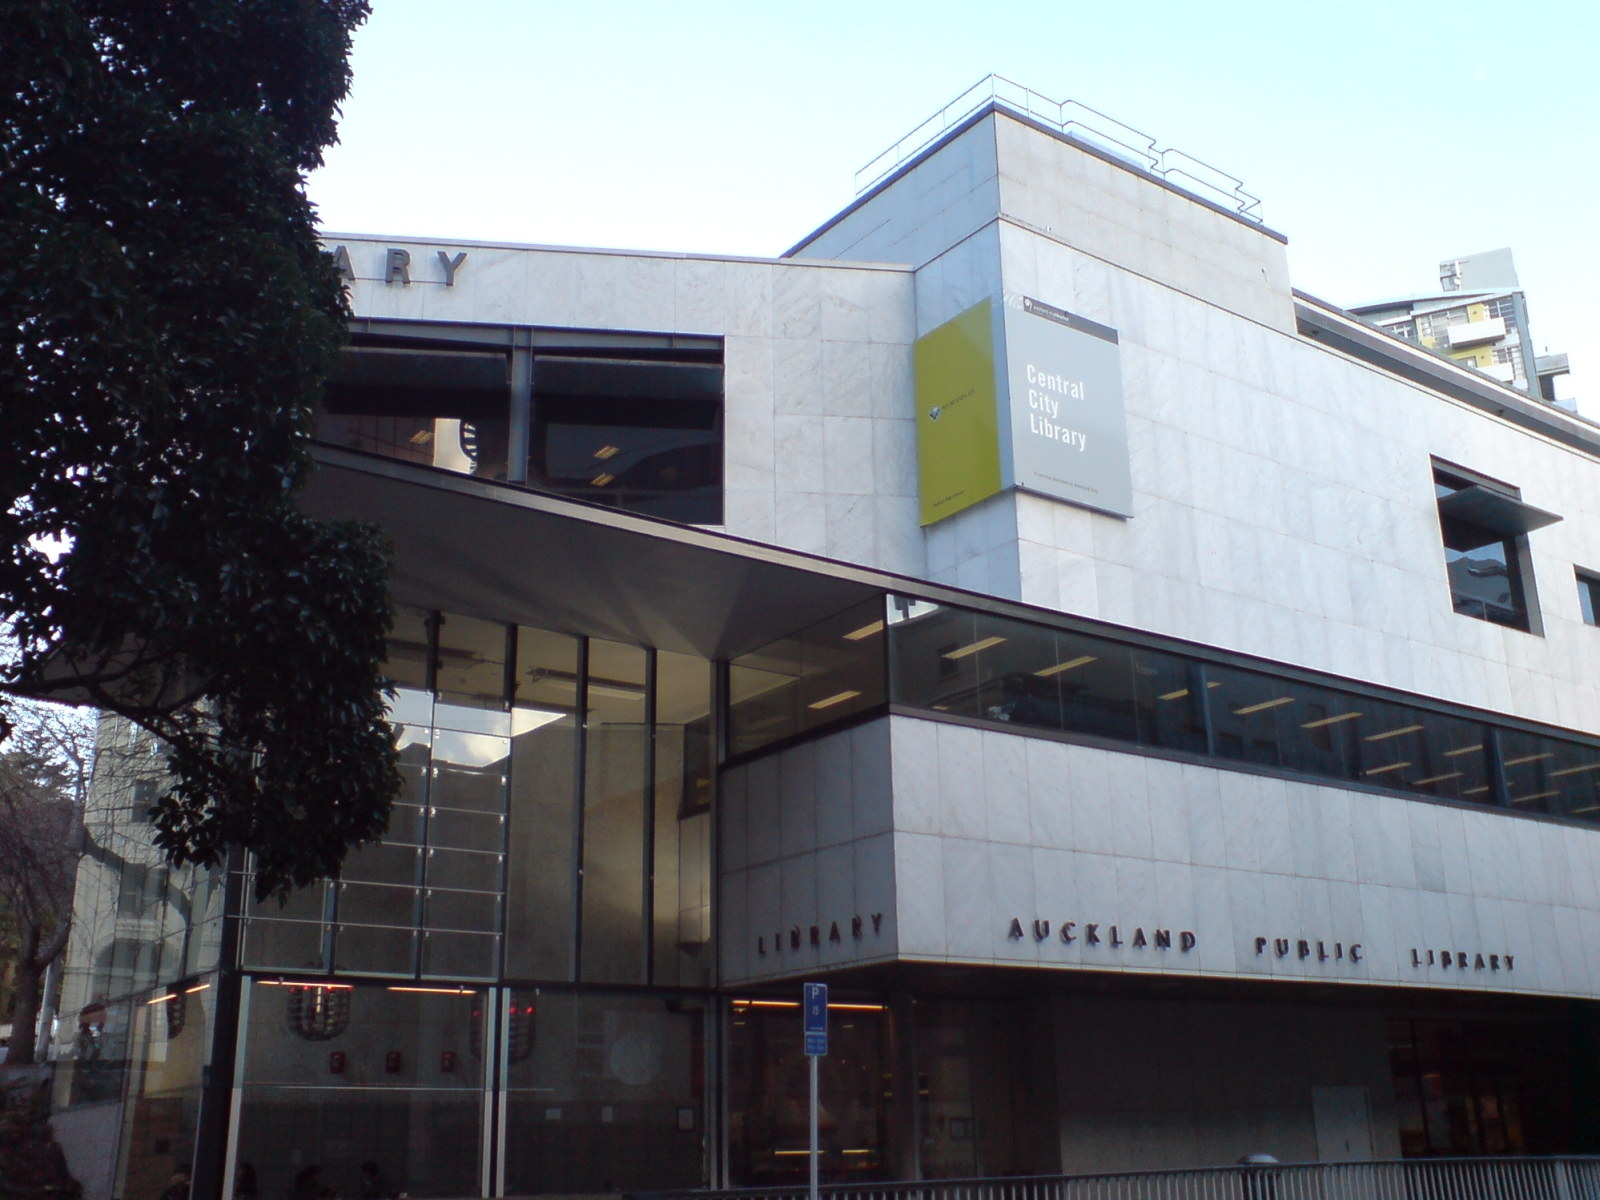 Central City Library, Auckland